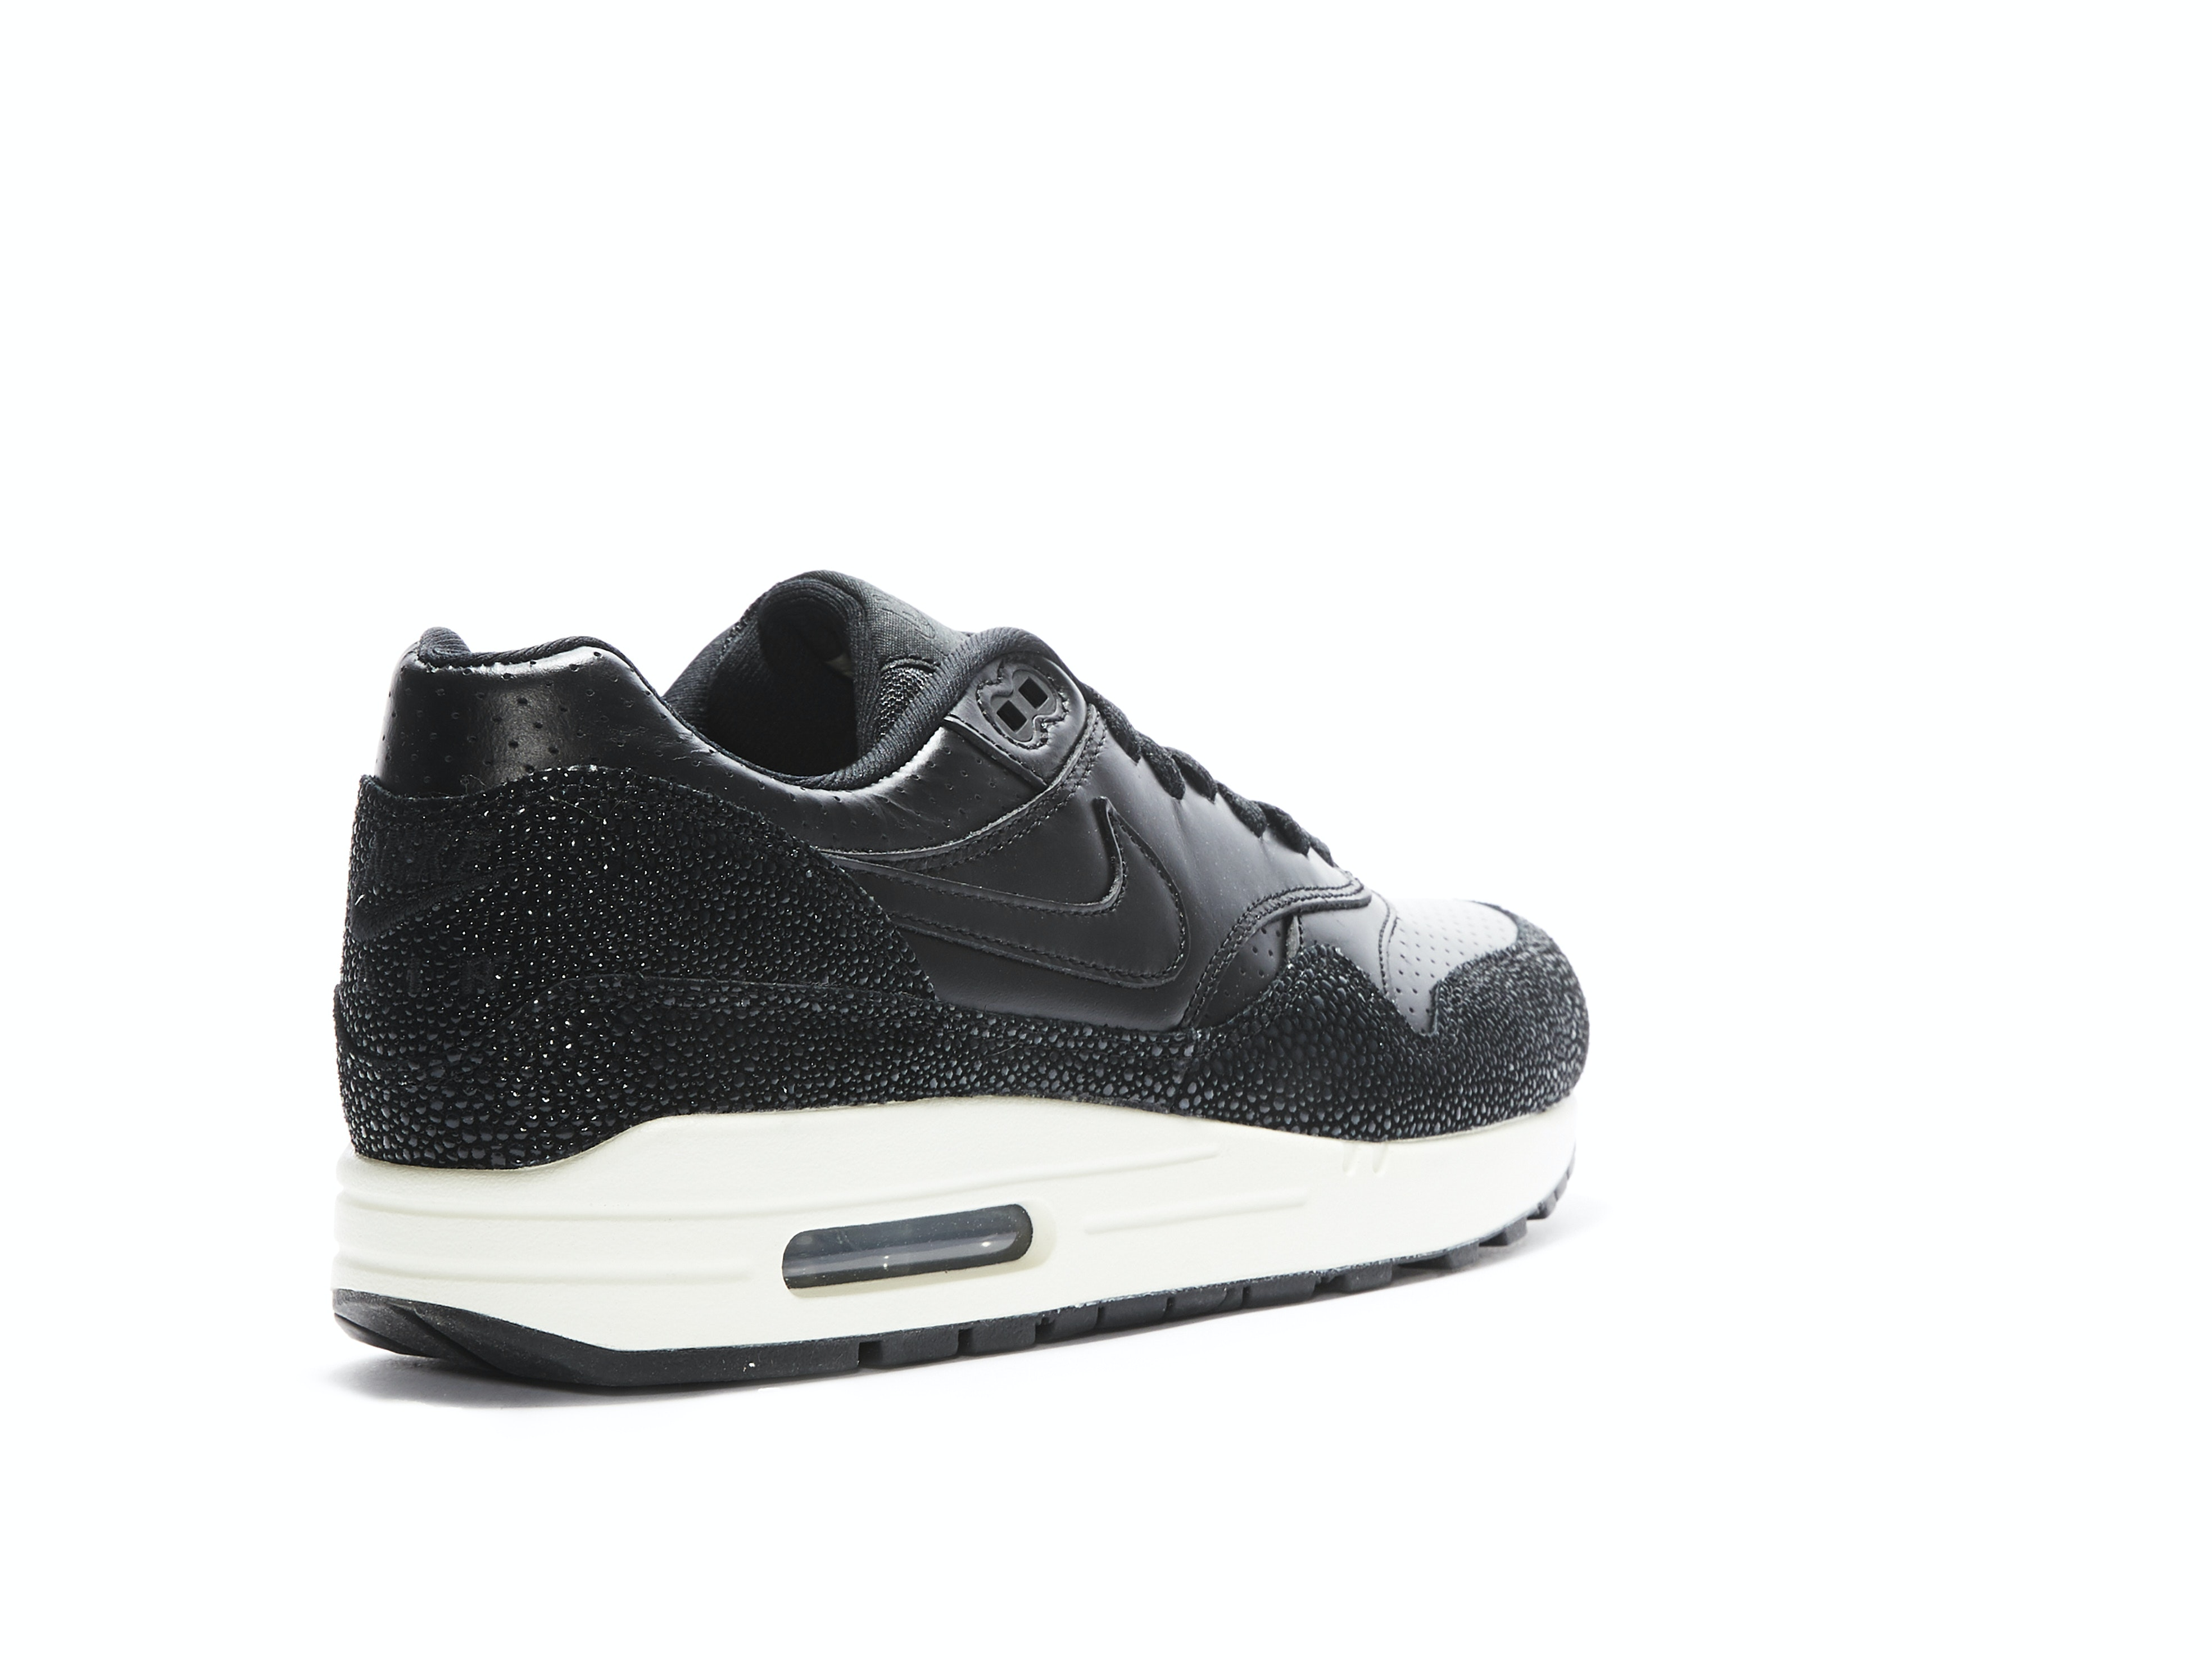 f03d05ea26 Air Max 1 Leather Stingray. 100% AuthenticSold out! Nike / 705007-001